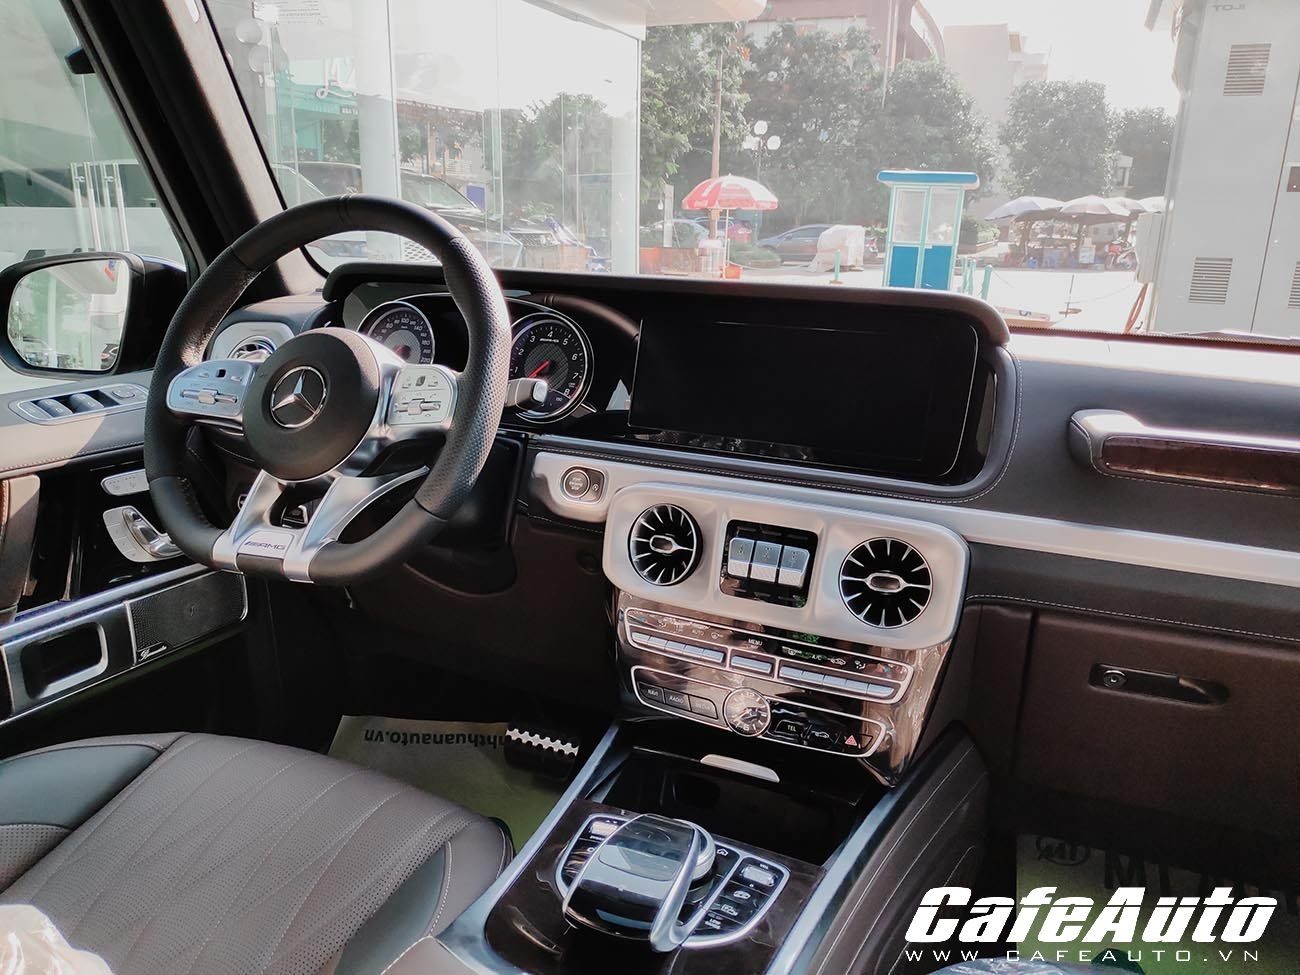 G63AMG-cafeautovn-8